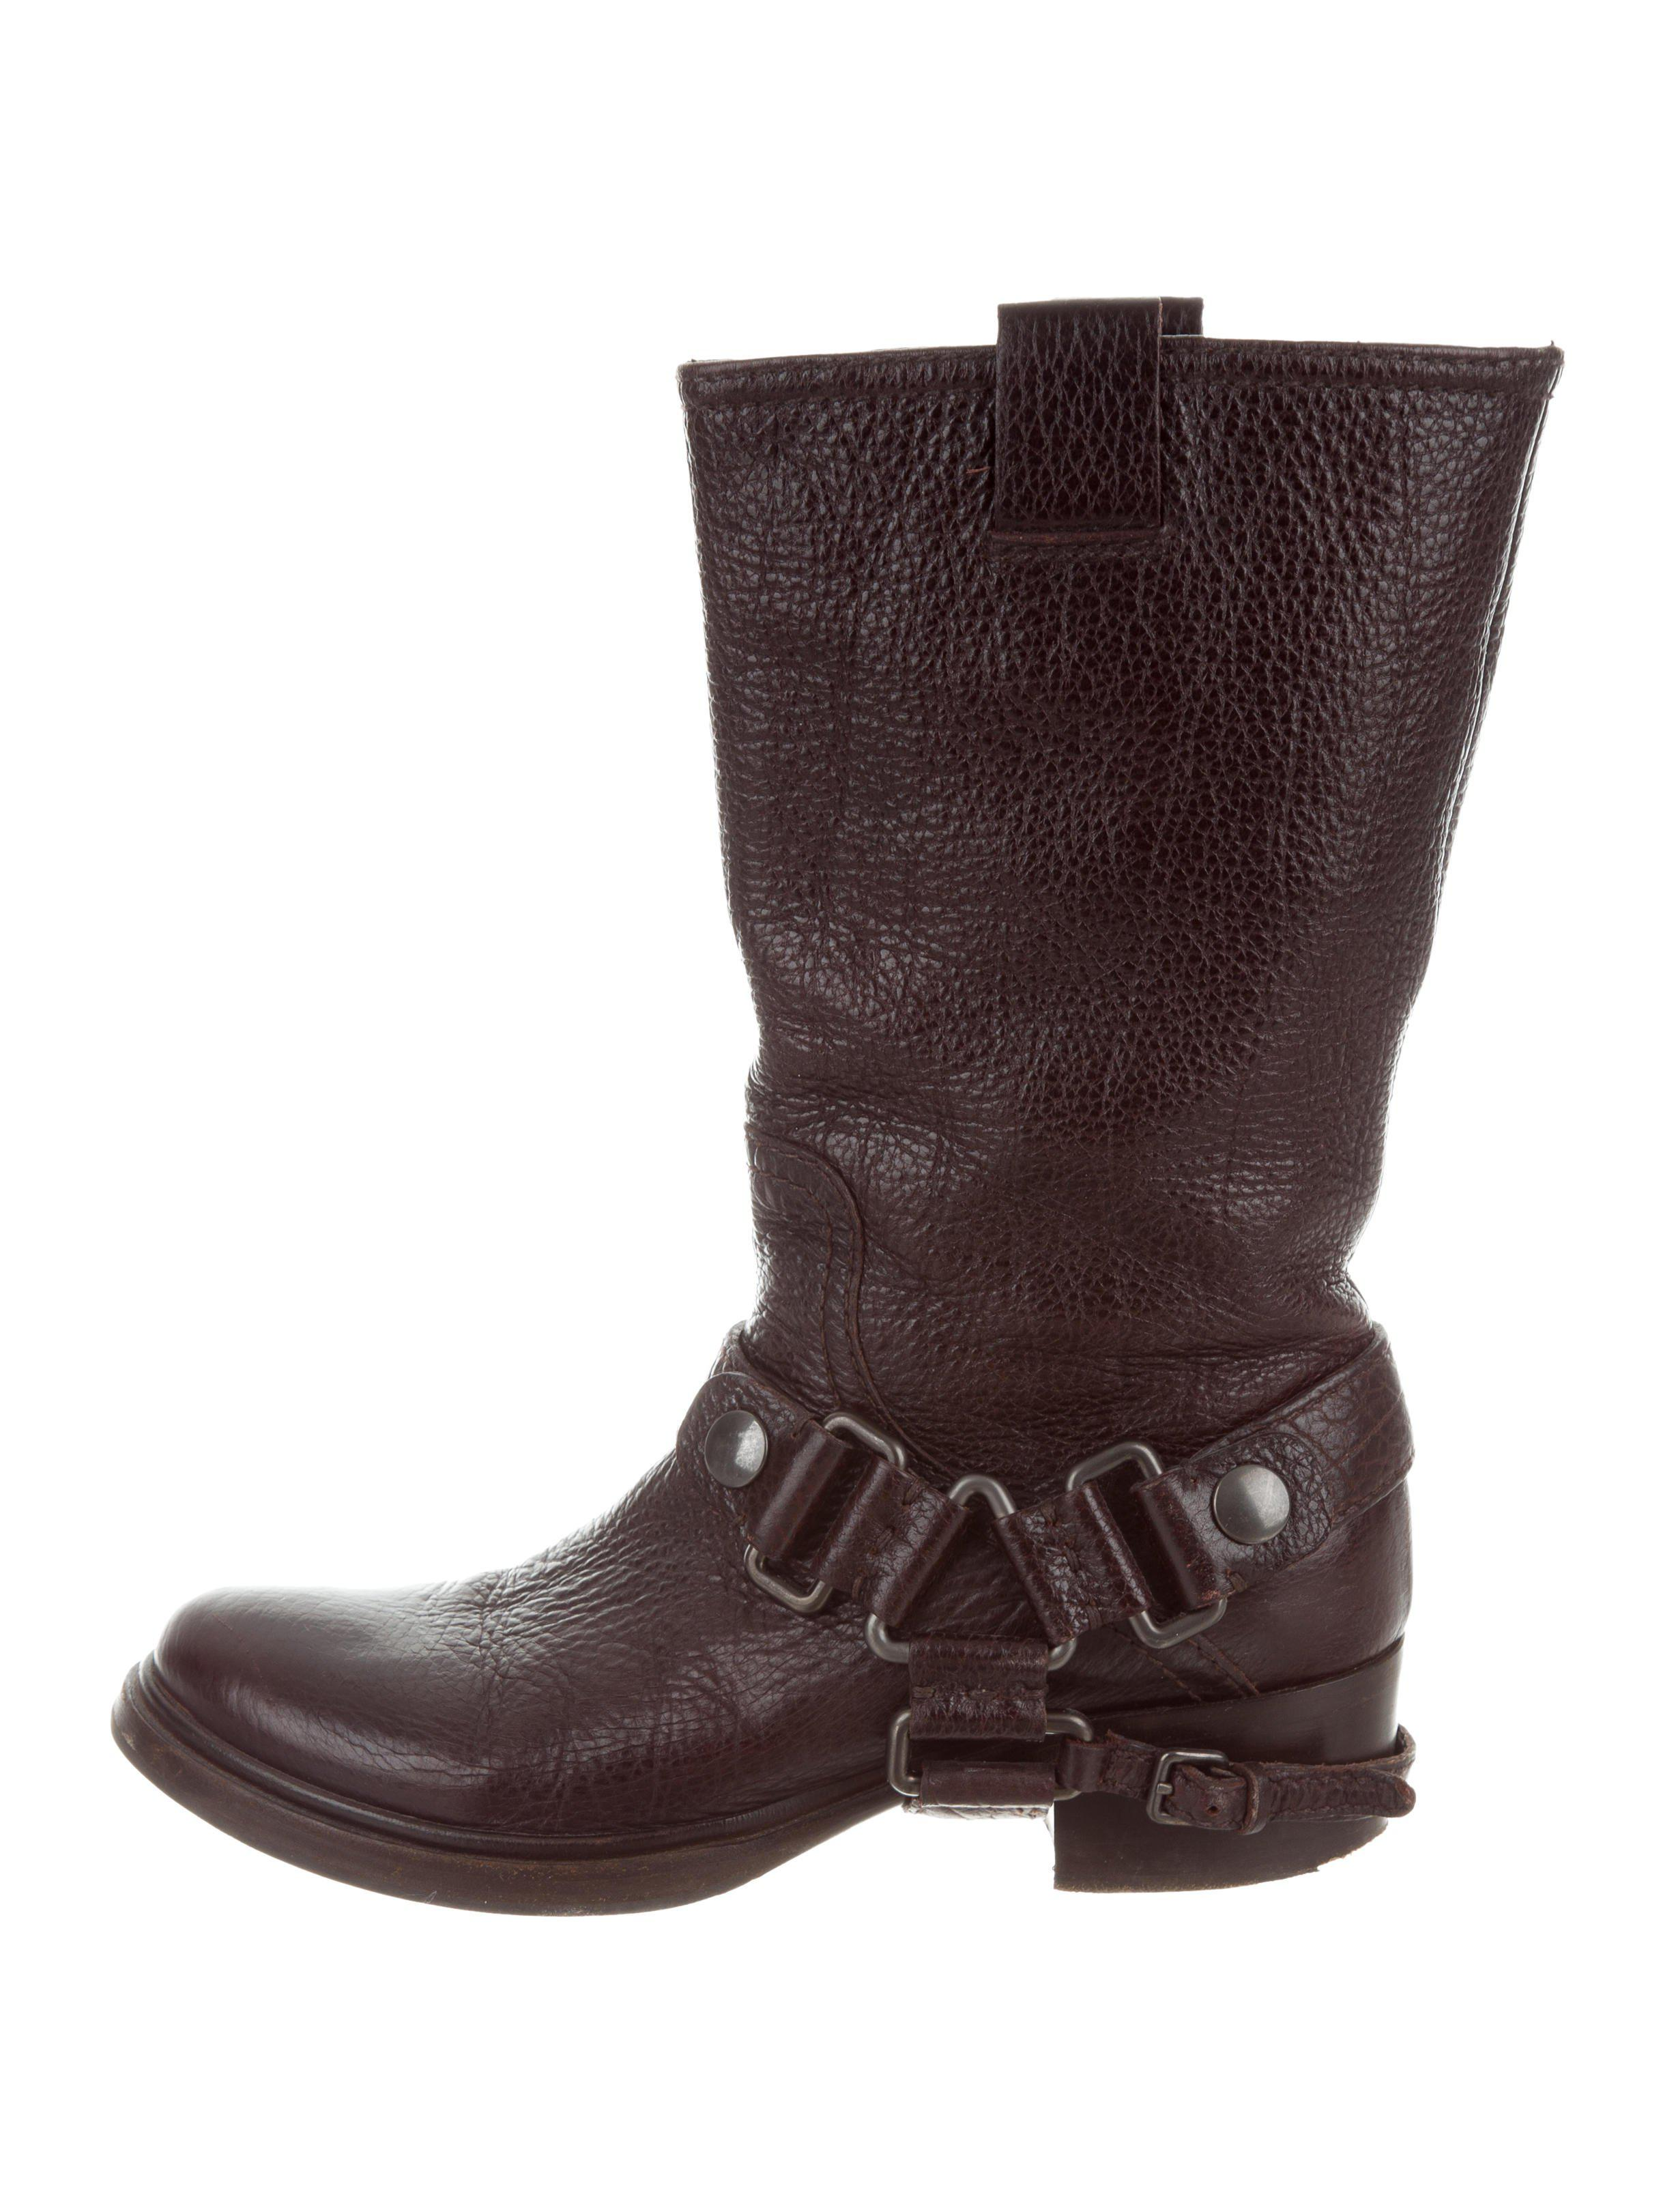 Miu Miu Mid-Calf Leather Boots clearance shop offer cheap low price outlet comfortable amazon cheap online 74W5uL